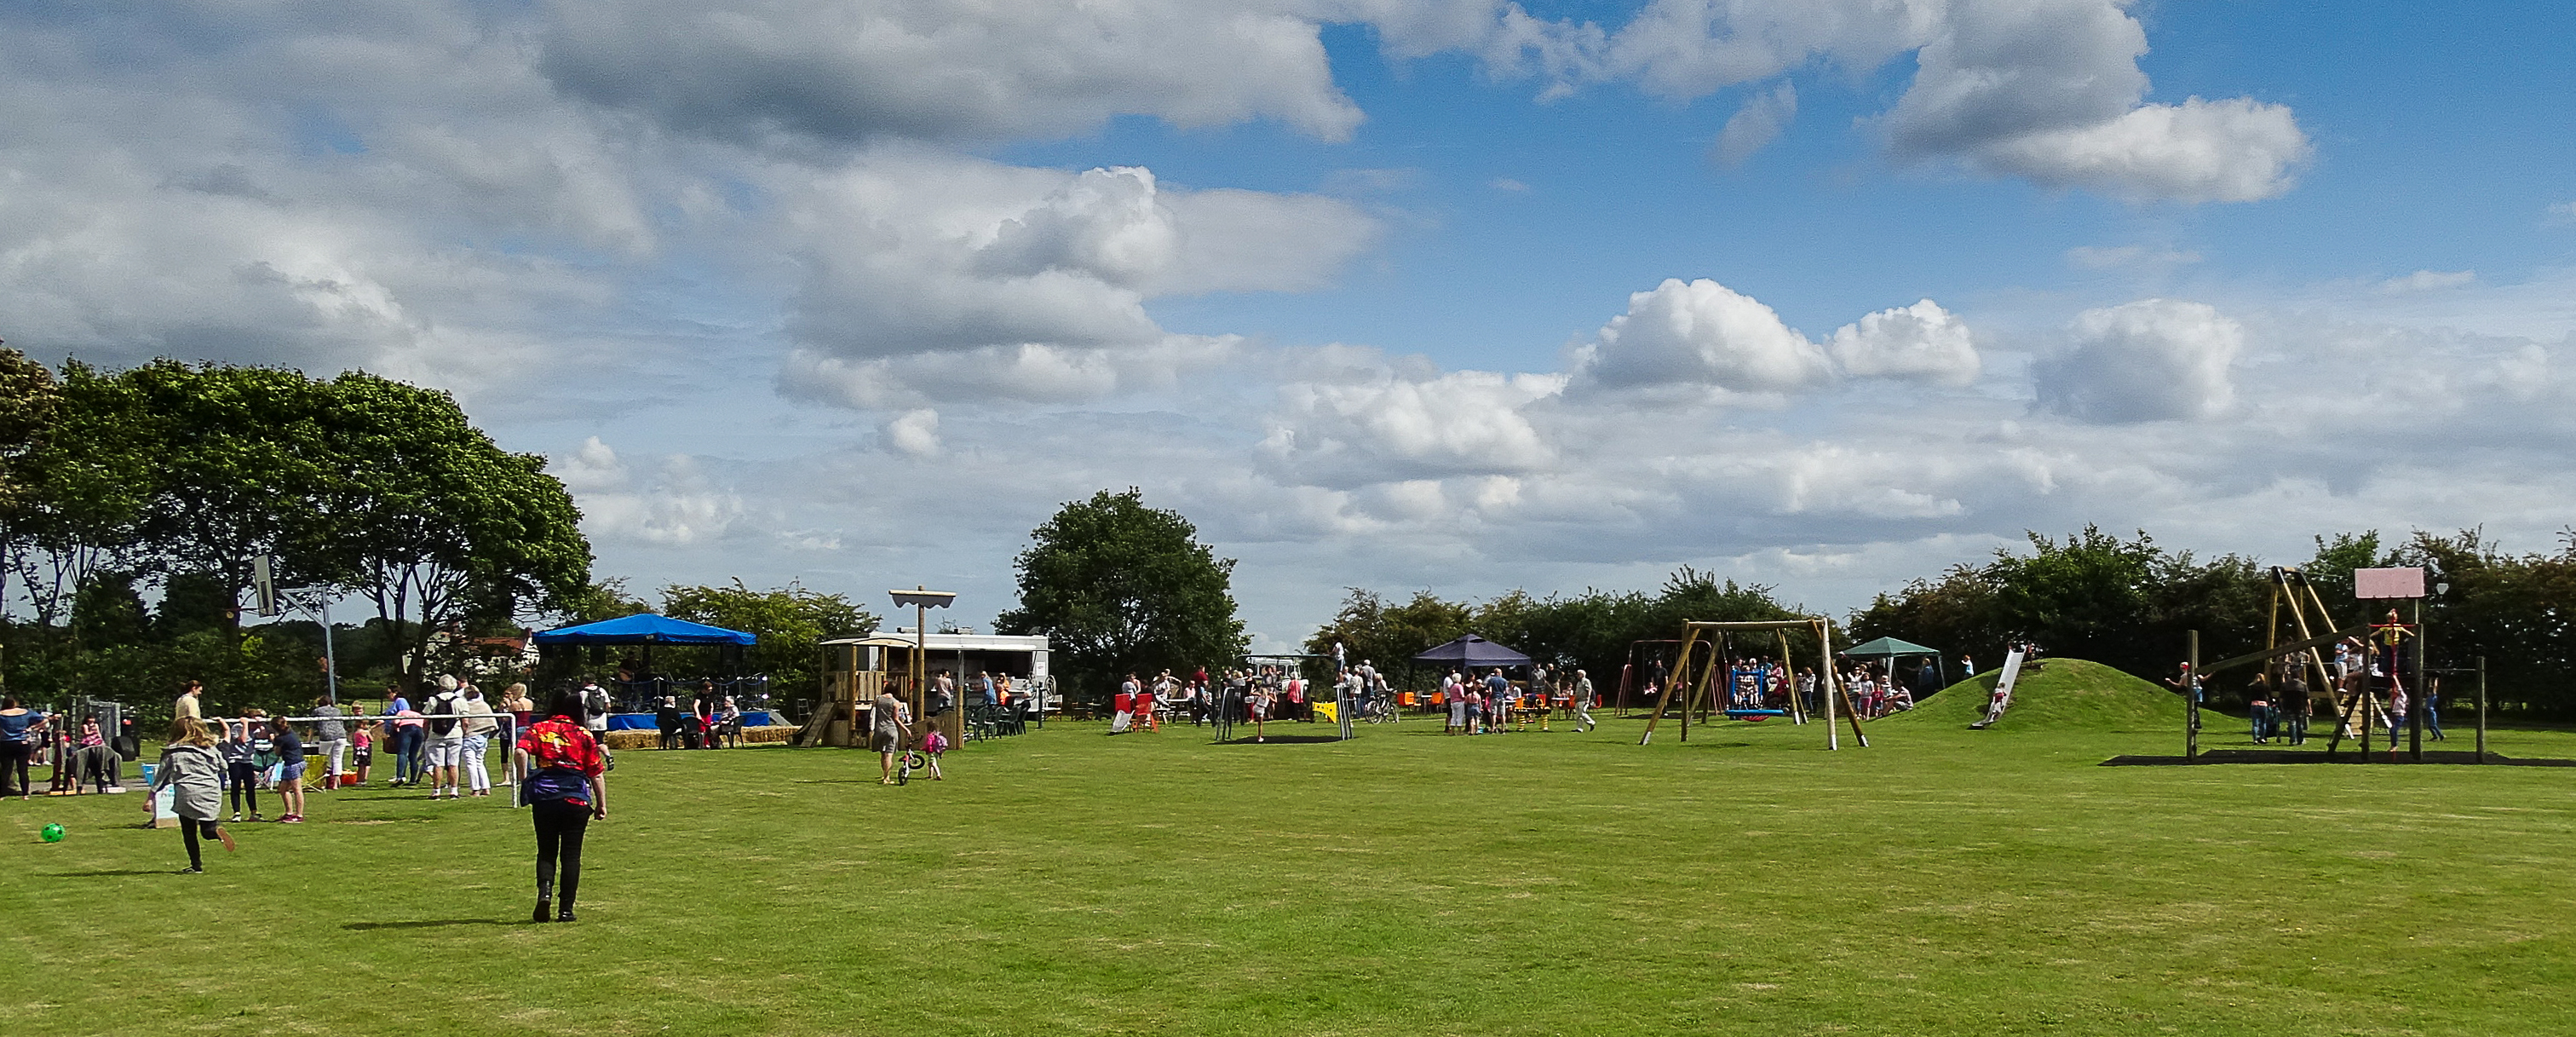 Celebrations at Ellingham playing field